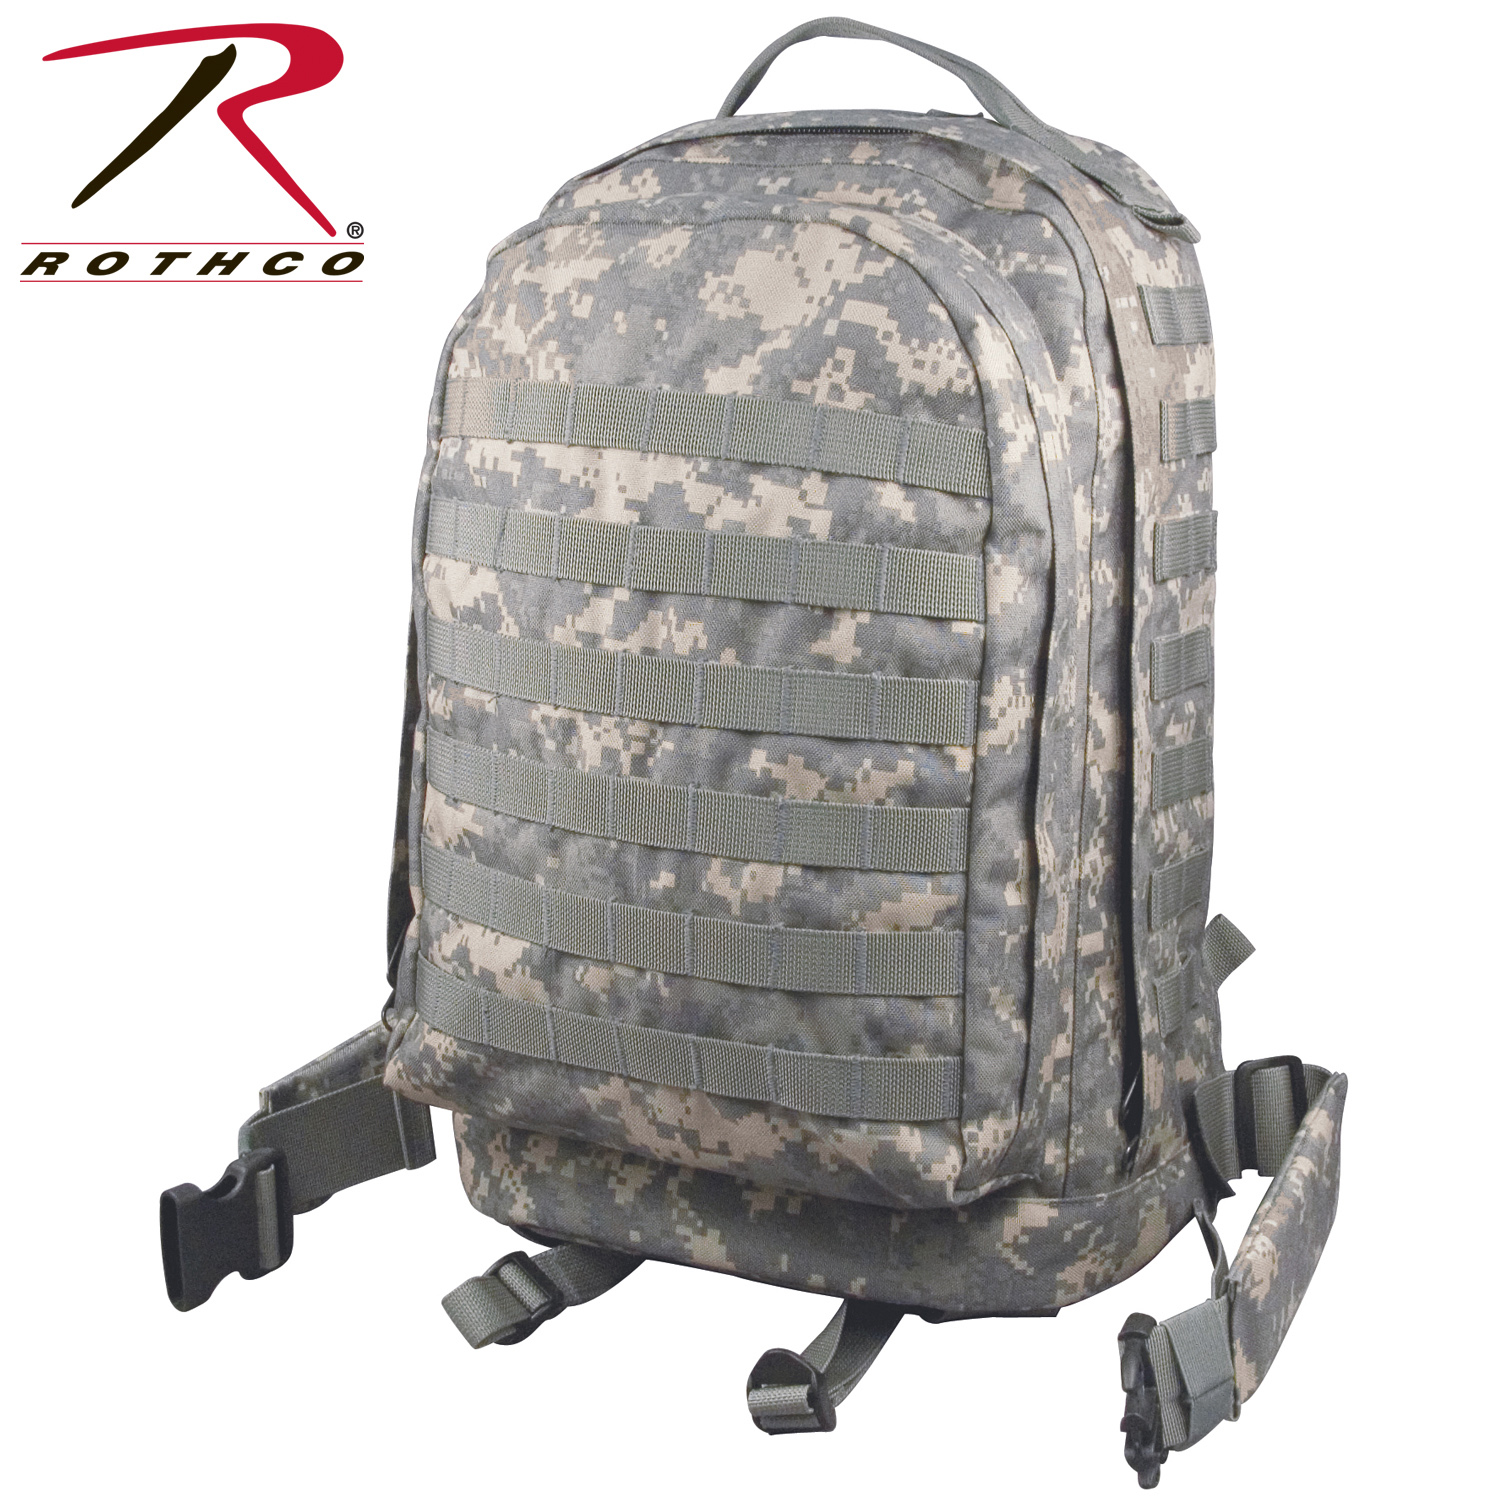 Where To Buy Your Own Pubg Level 3 Backpack Allgamers